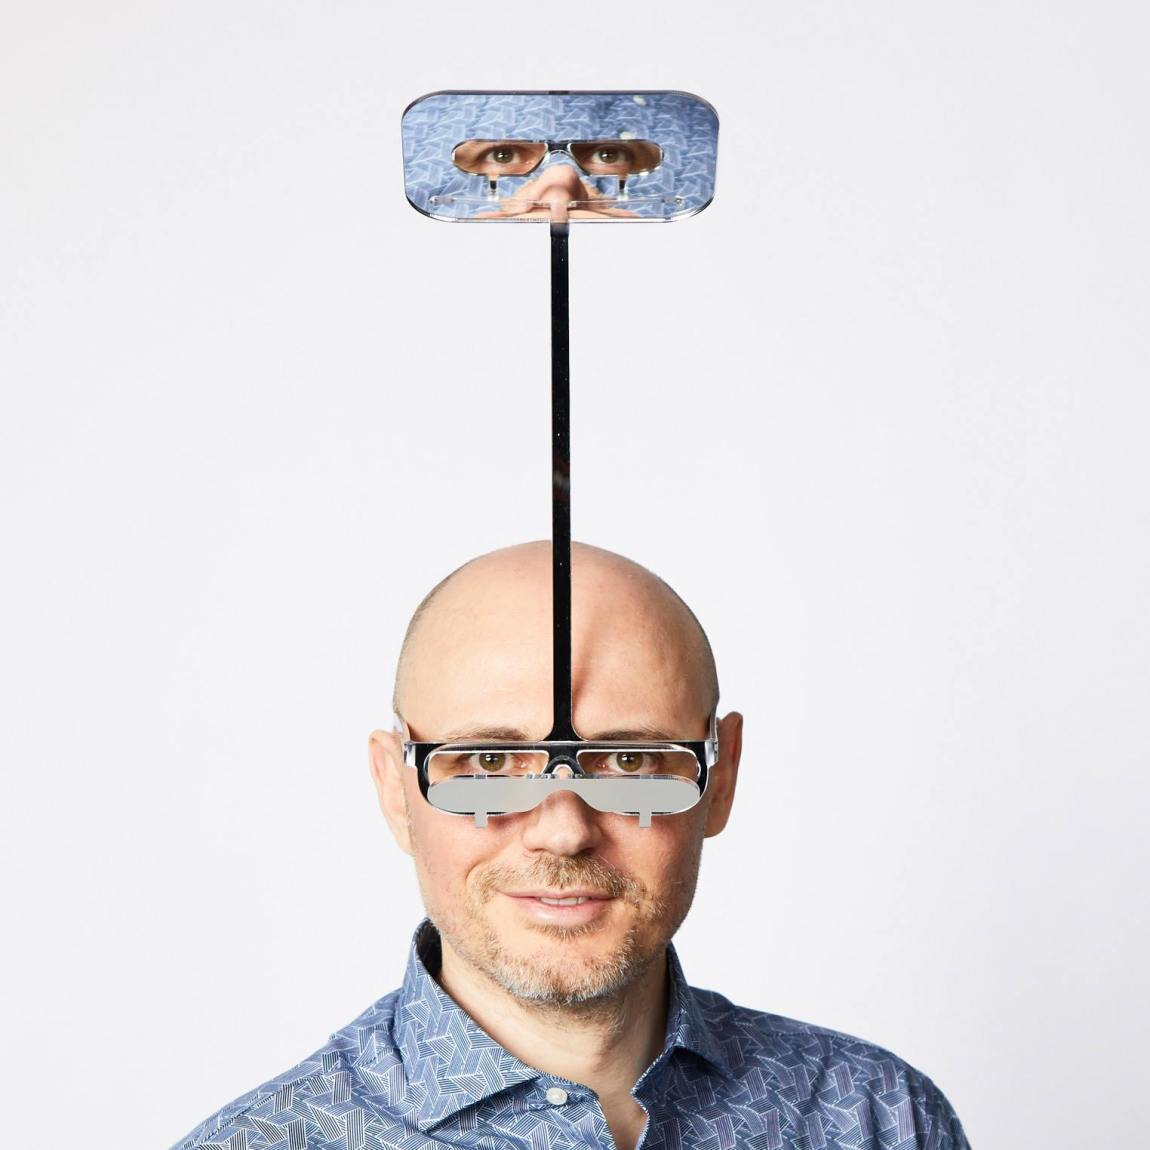 One Foot Taller Periscope